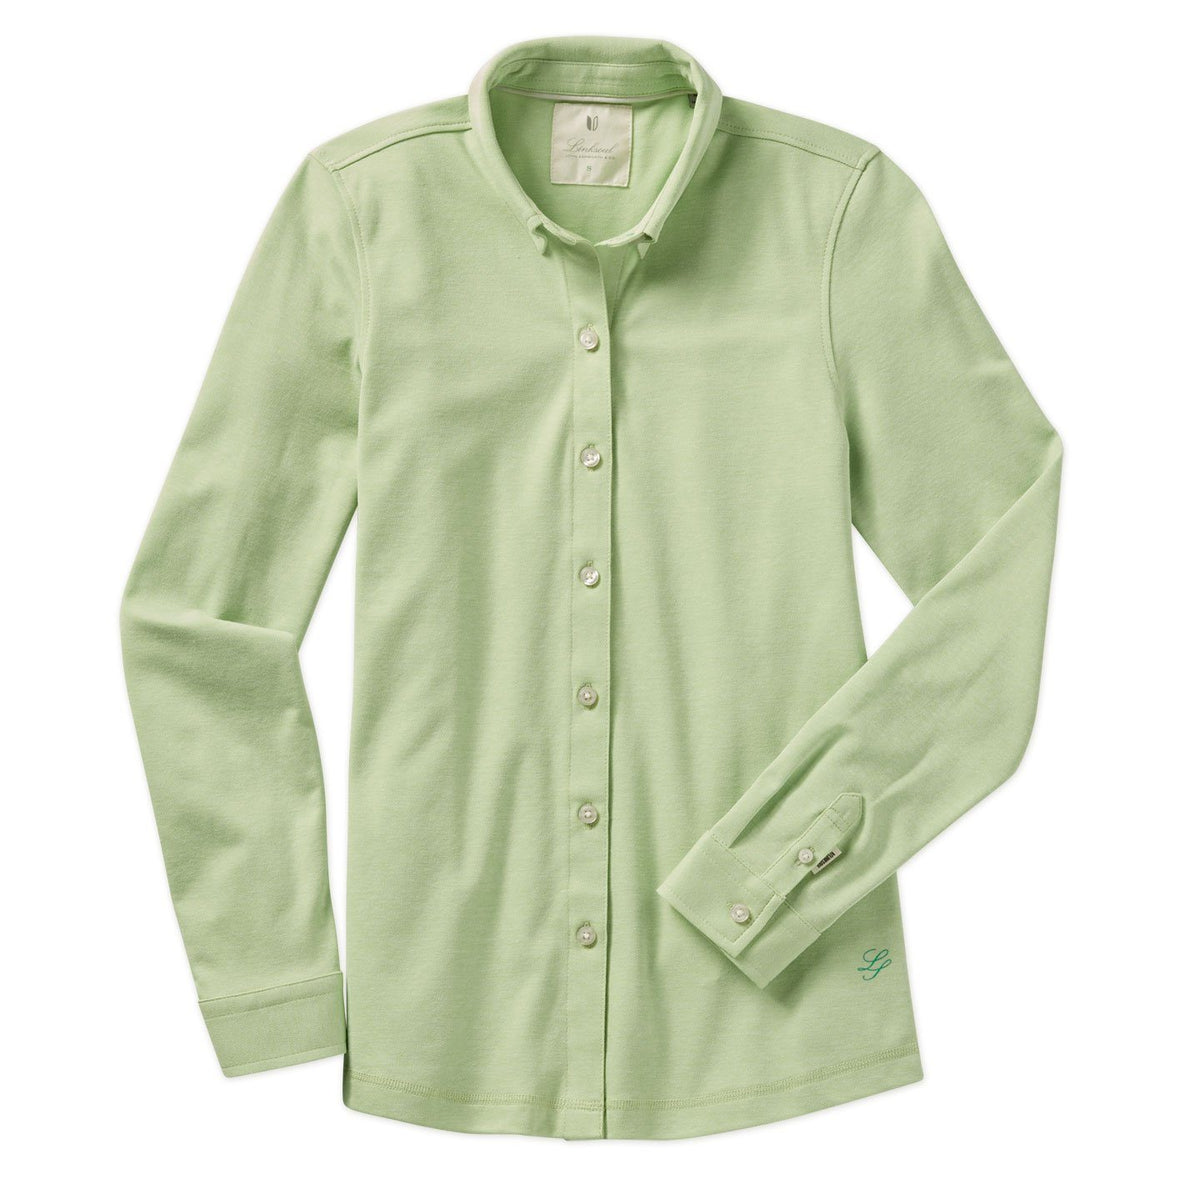 Women's Double Knit Dry-Tech Shirt